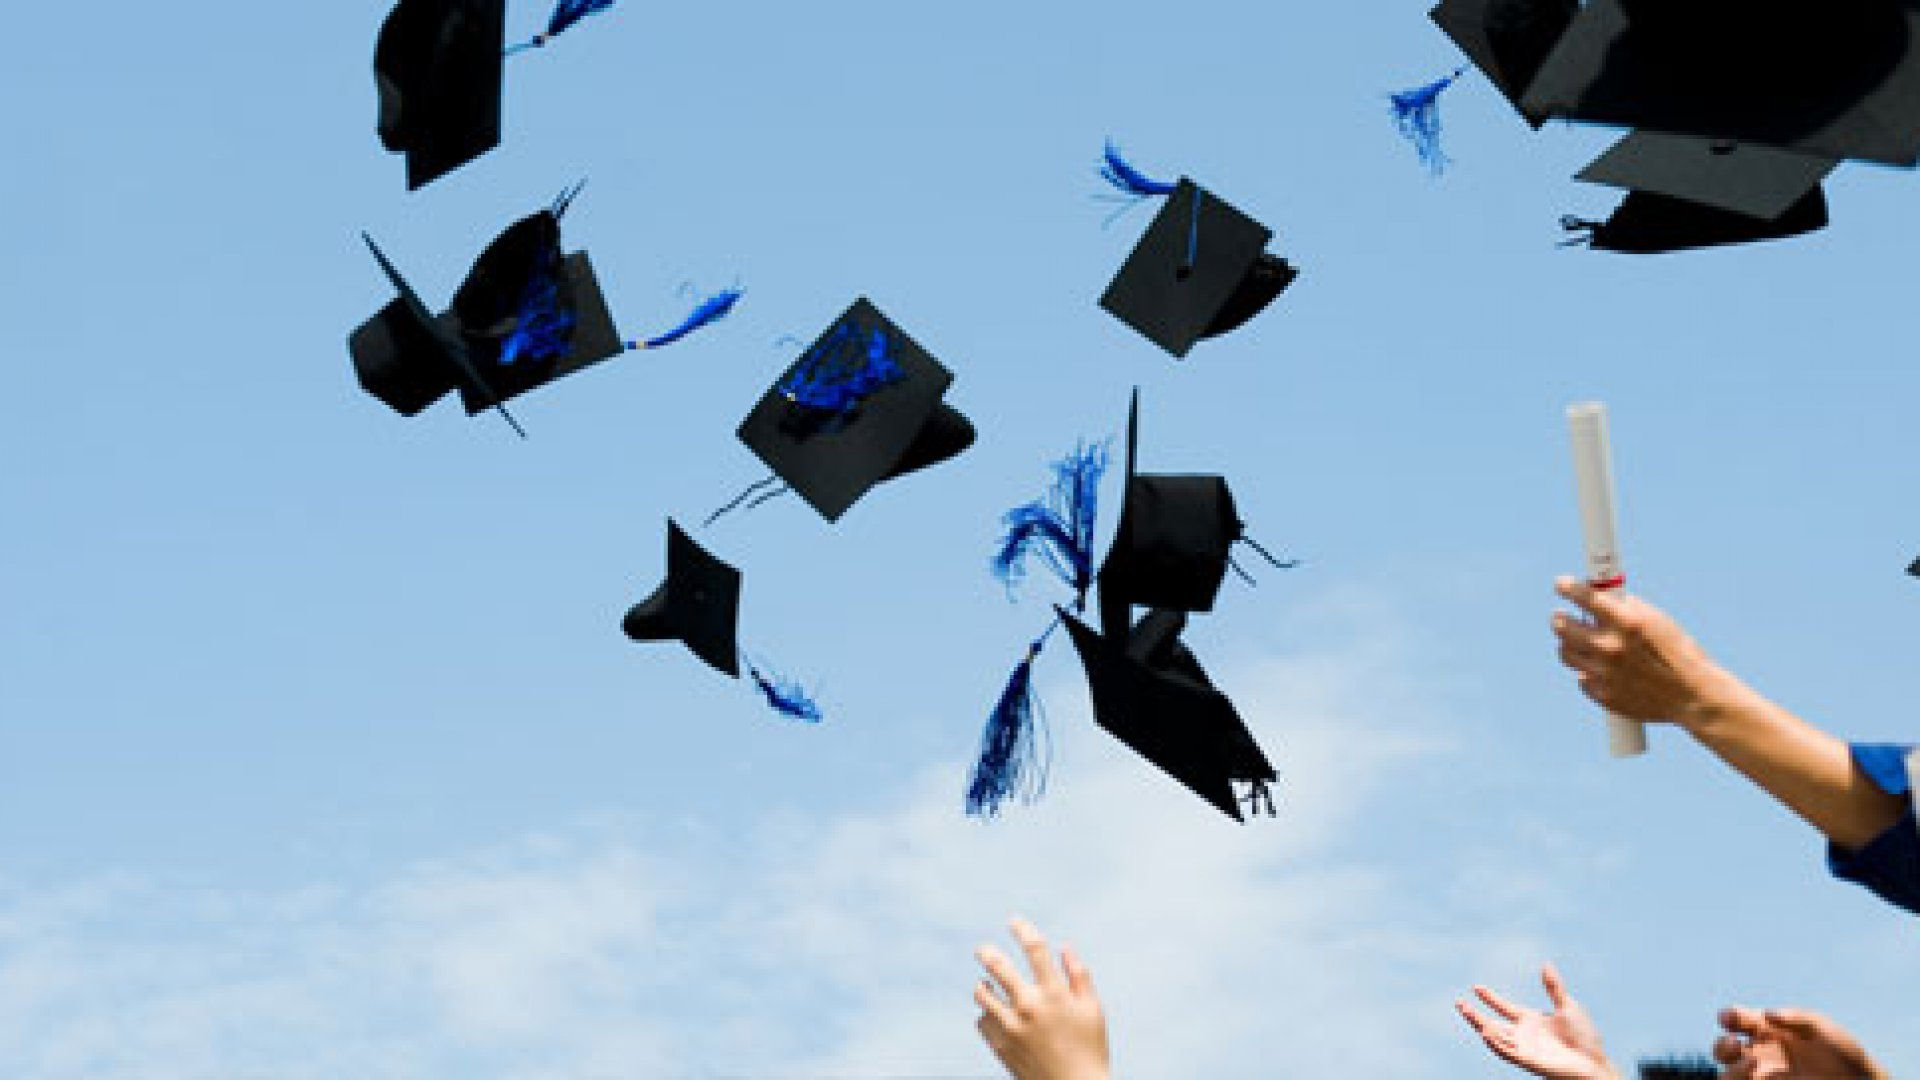 Grad Hiring: It's Tough Out There for Start-ups